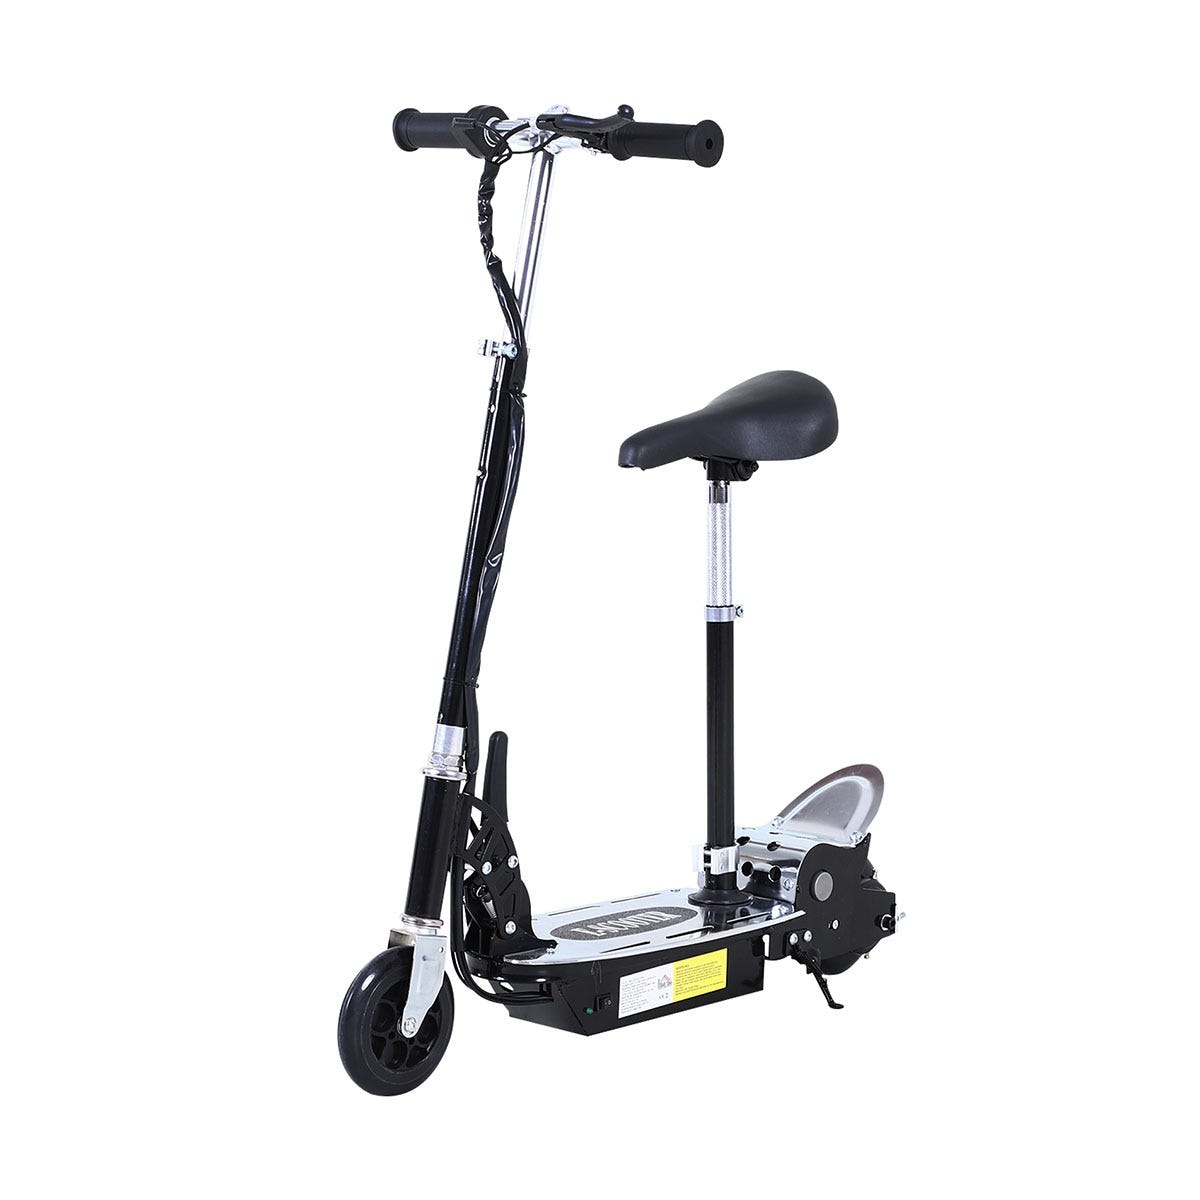 Reiten Teen Foldable E-Scooter Electric Battery 12V 120W with Brake Kickstand - Black